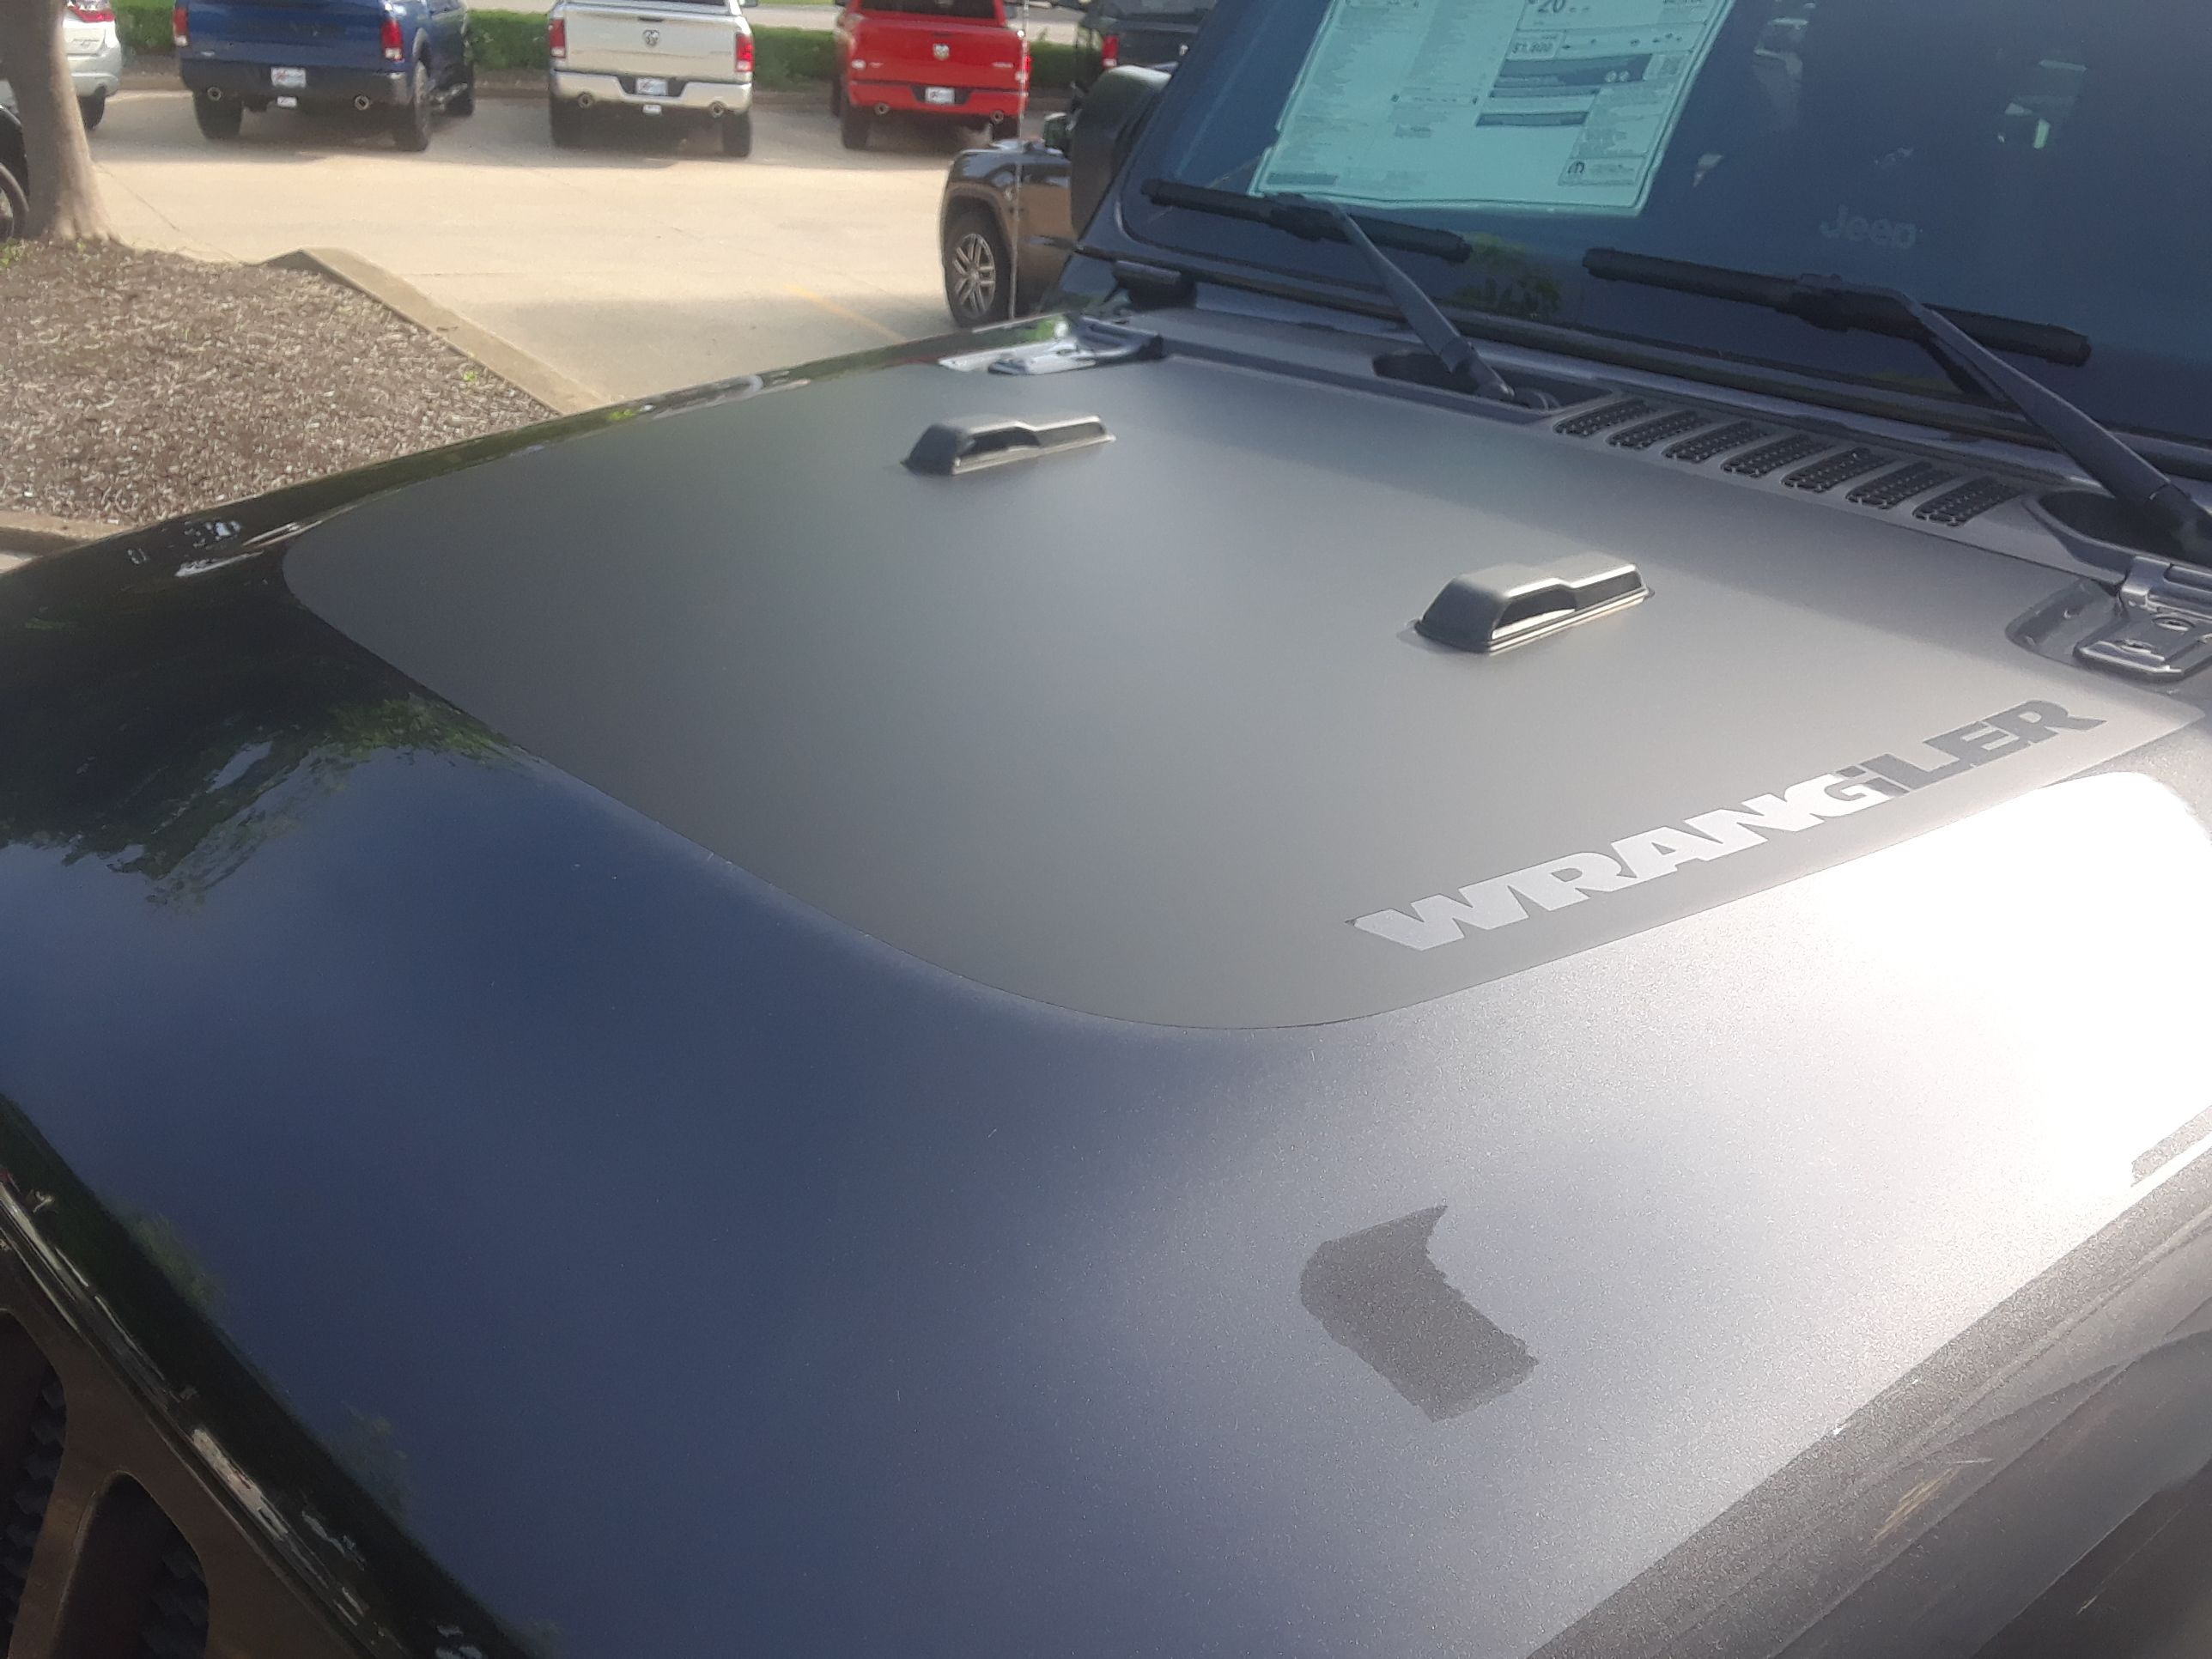 2019 Jeep Wrangler Jl Hood Stripes Sport Hood 2018 2020 3m Or